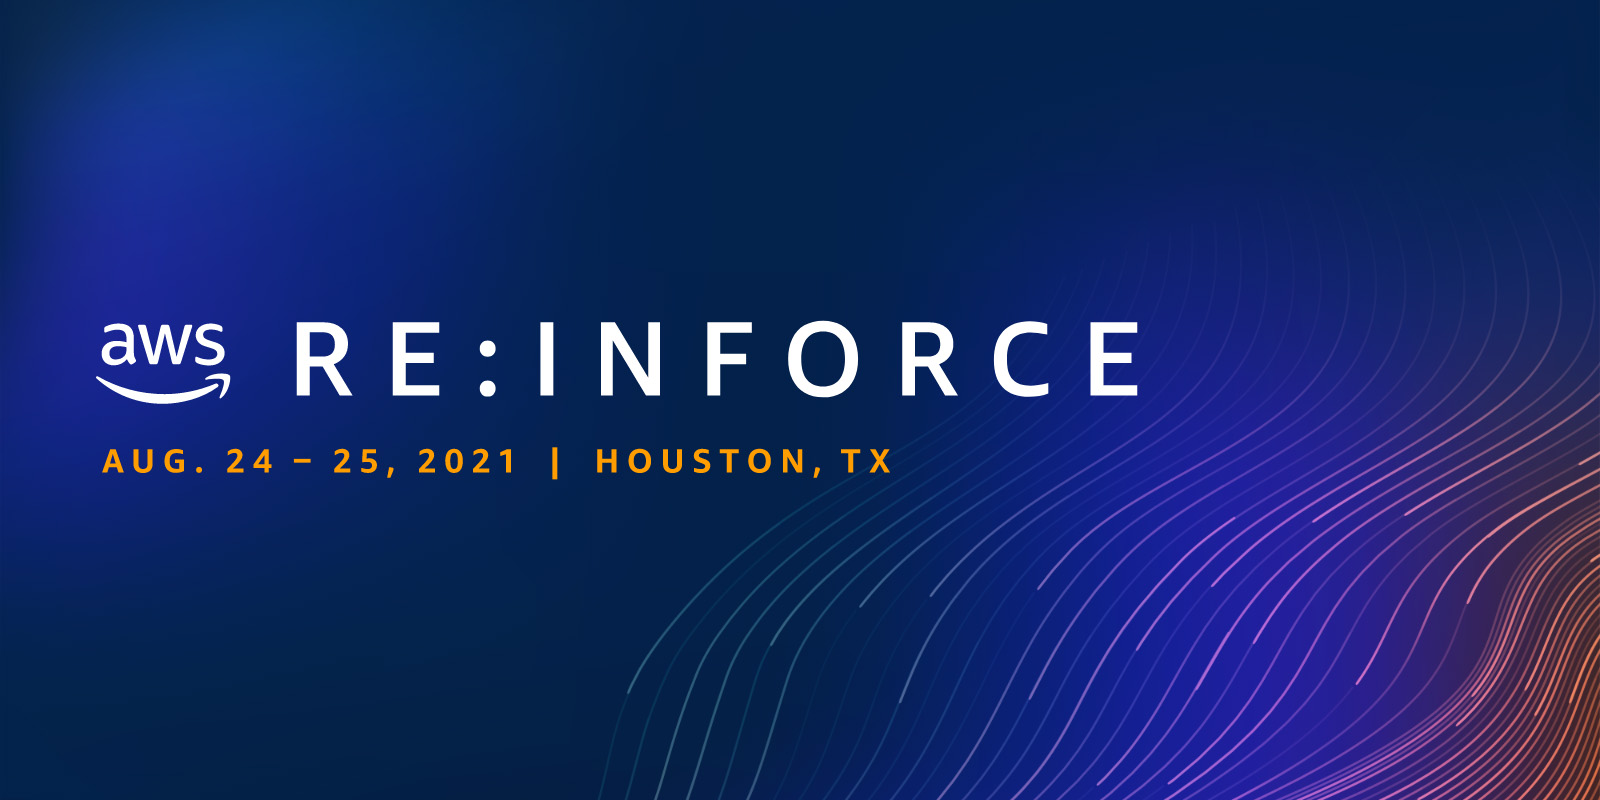 Join us personally for AWS re:Inforce 2021